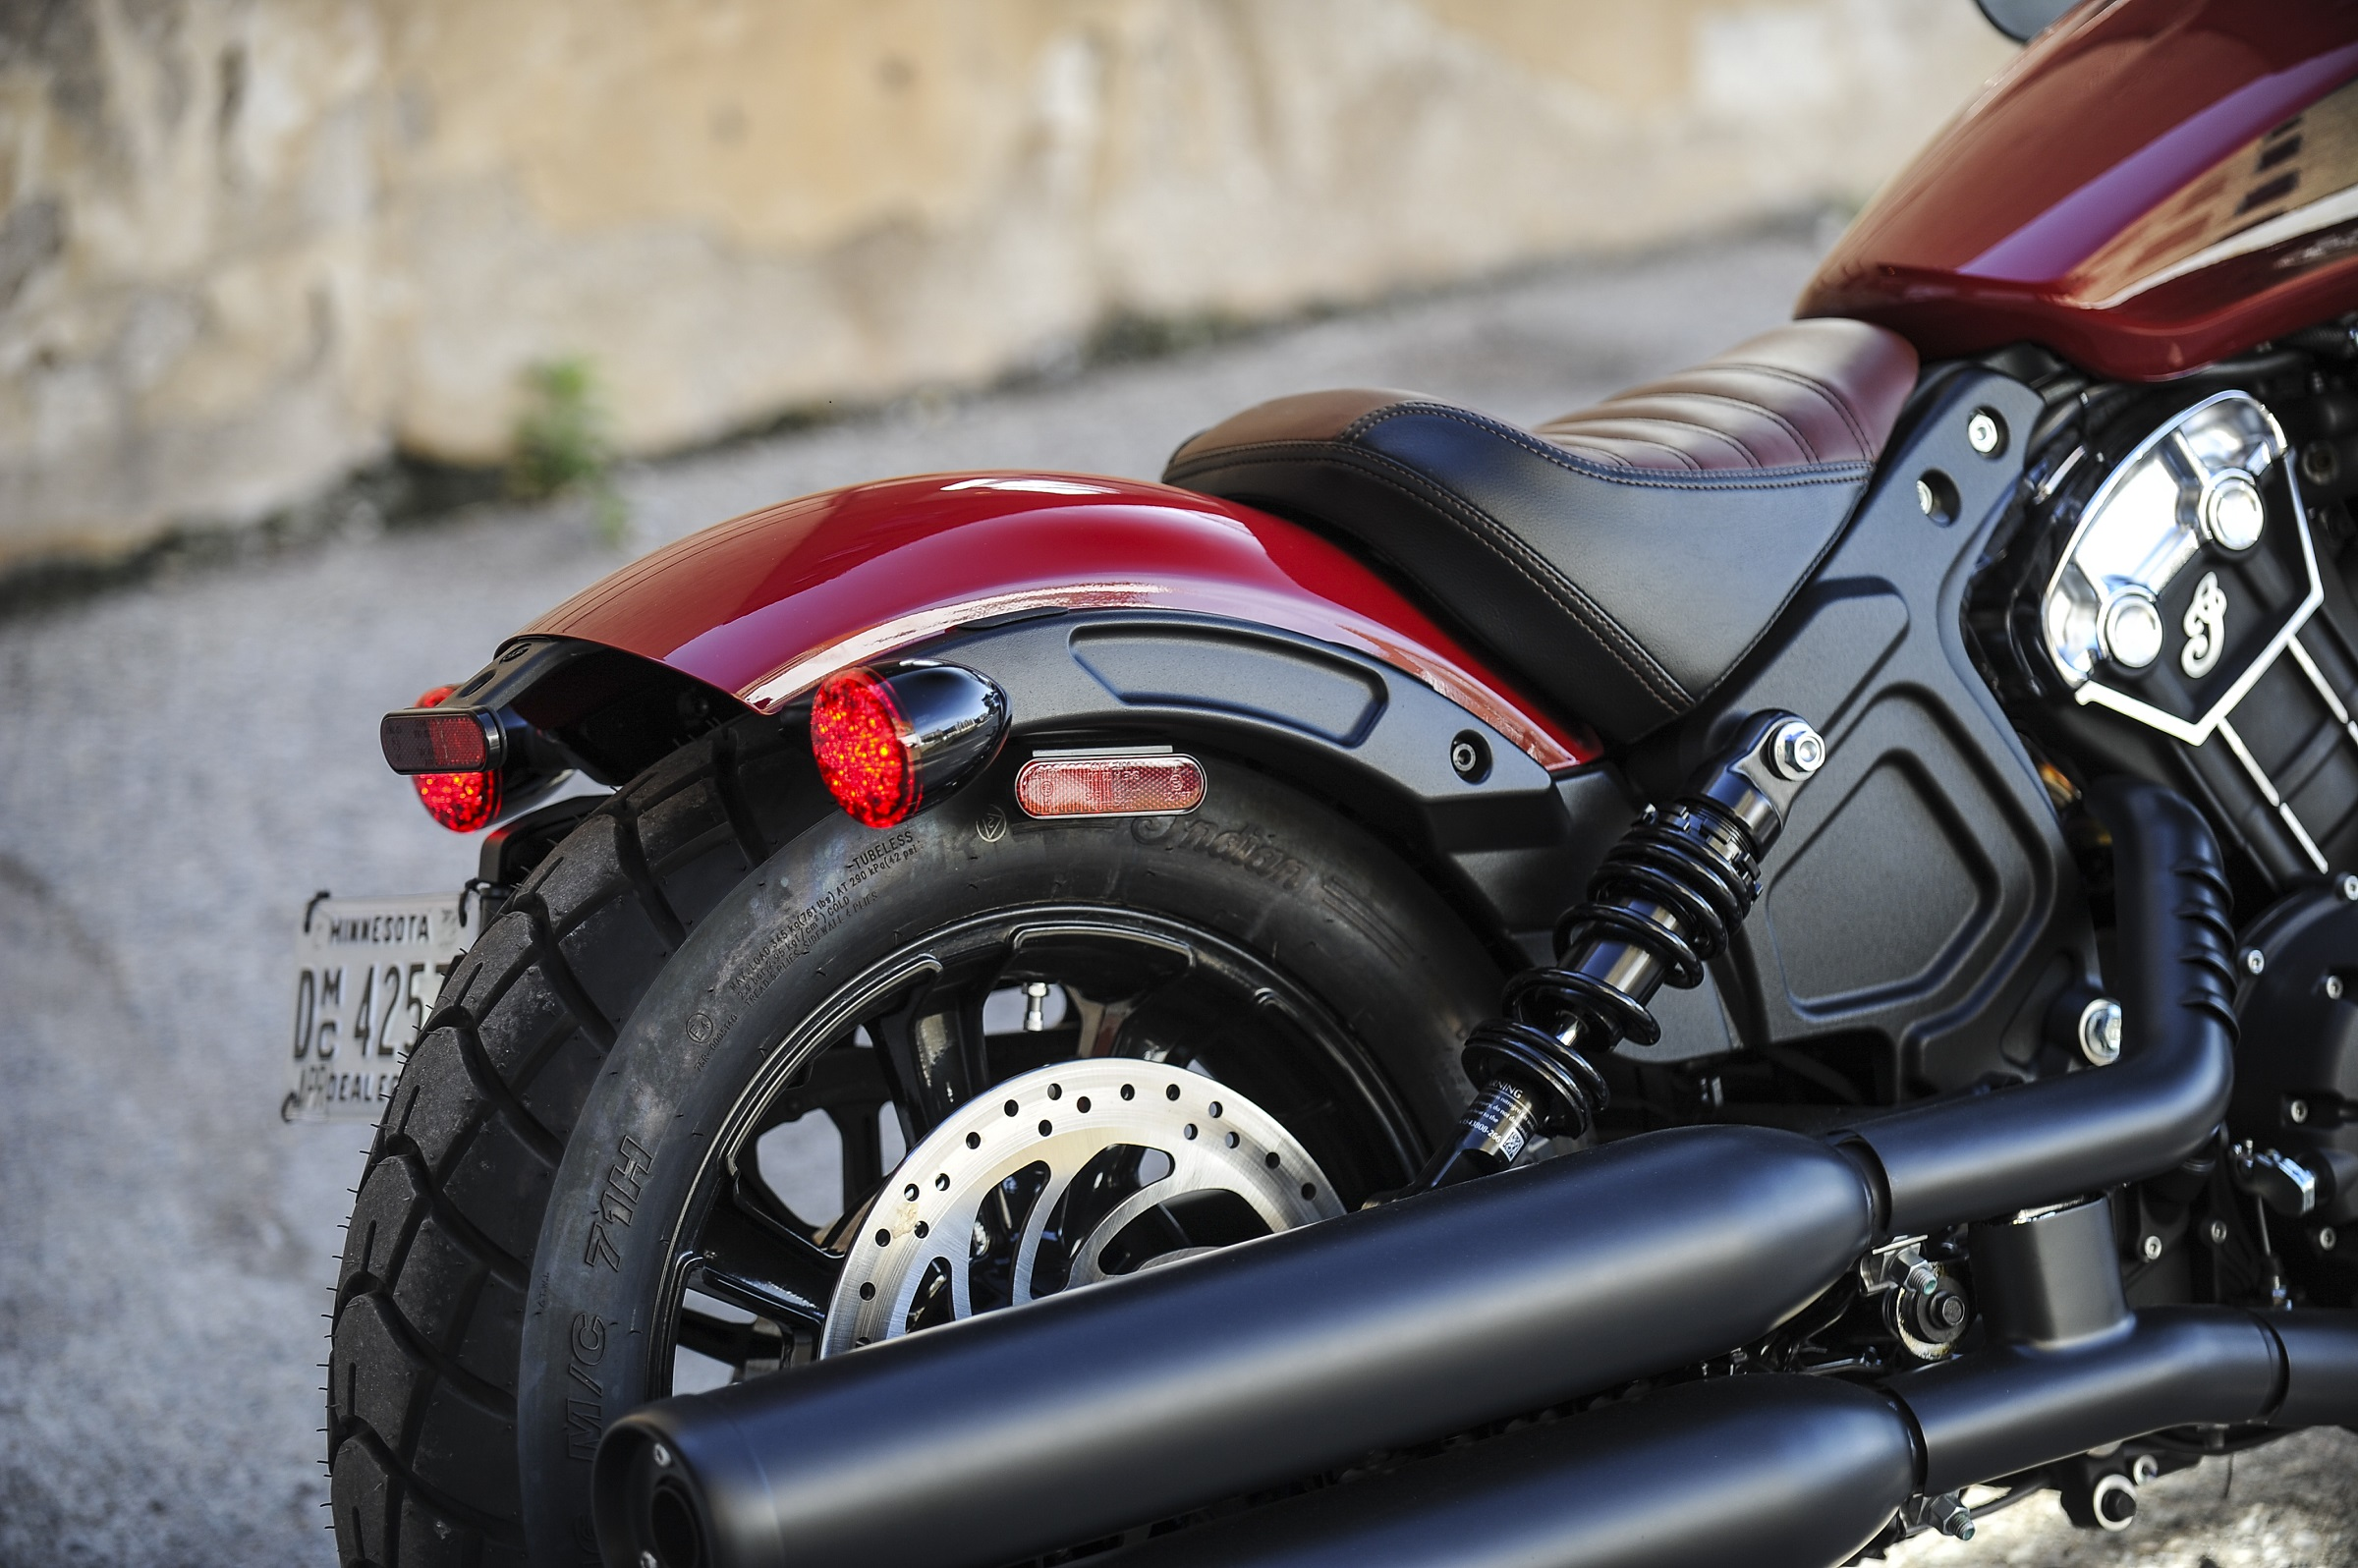 2018 Indian Scout Bobber first ride review - RevZilla